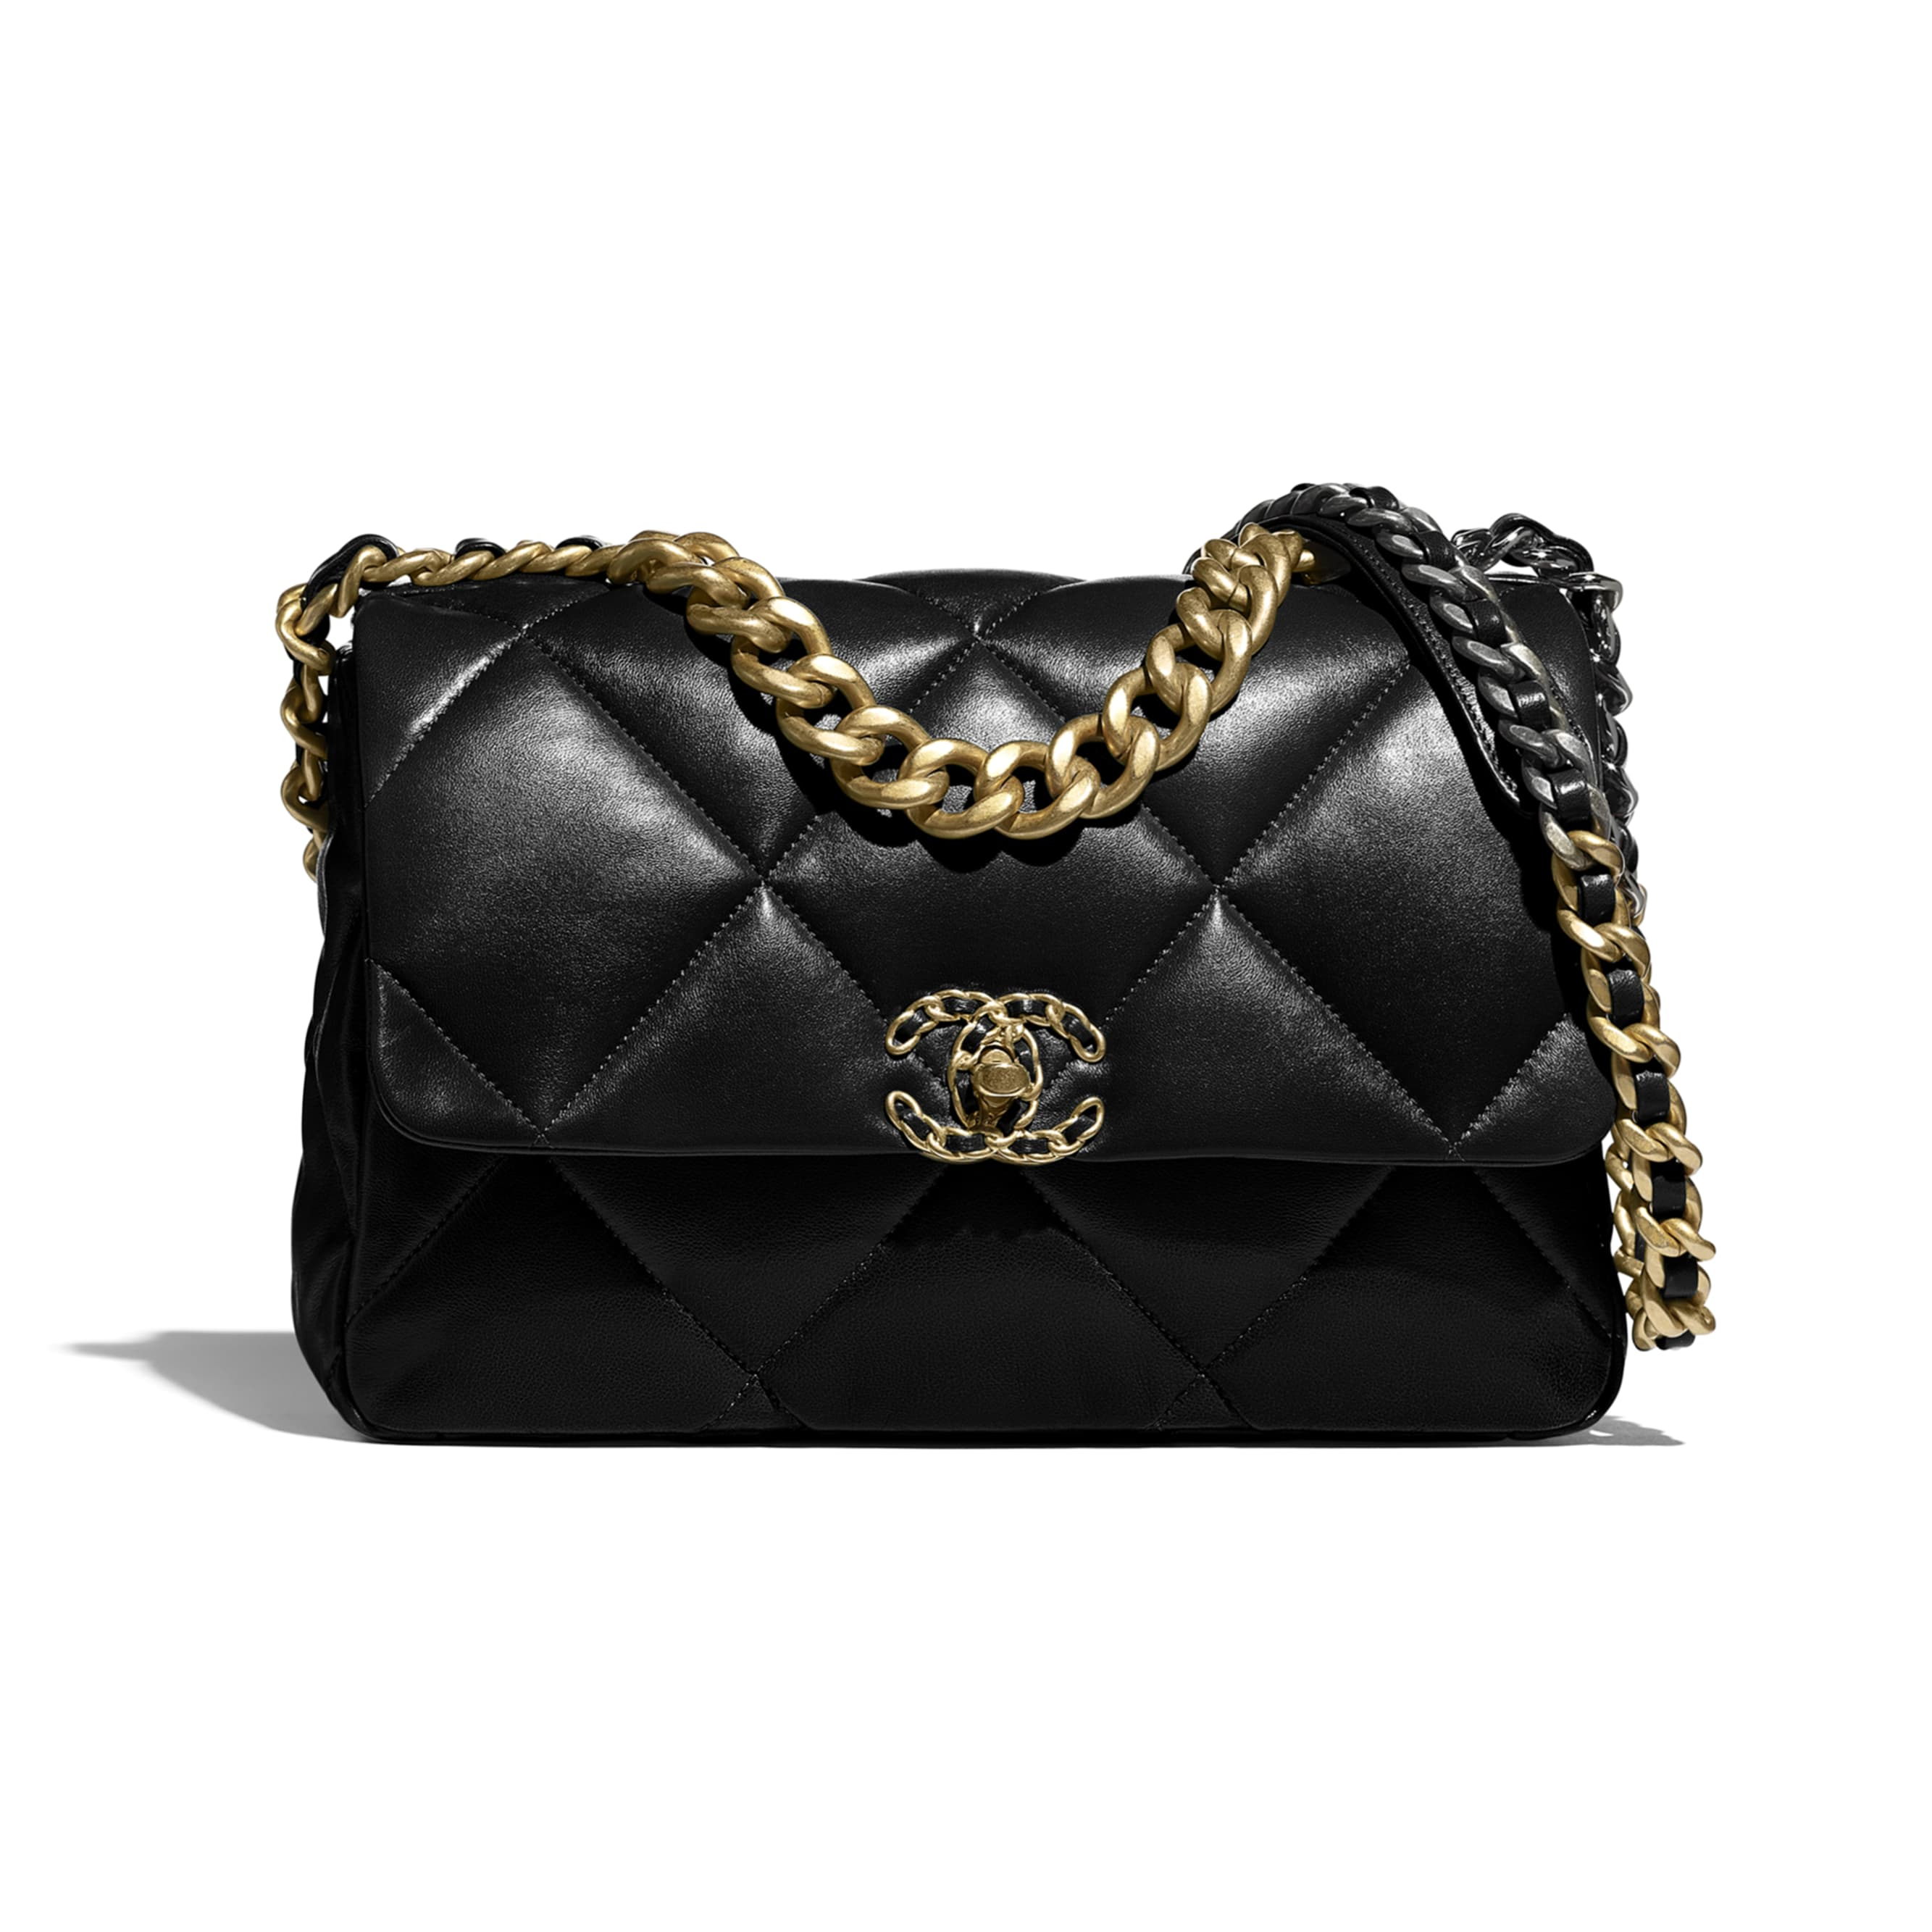 CHANEL 19 Large Handbag - Black - Lambskin, Gold-Tone, Silver-Tone & Ruthenium-Finish Metal - CHANEL - Default view - see standard sized version